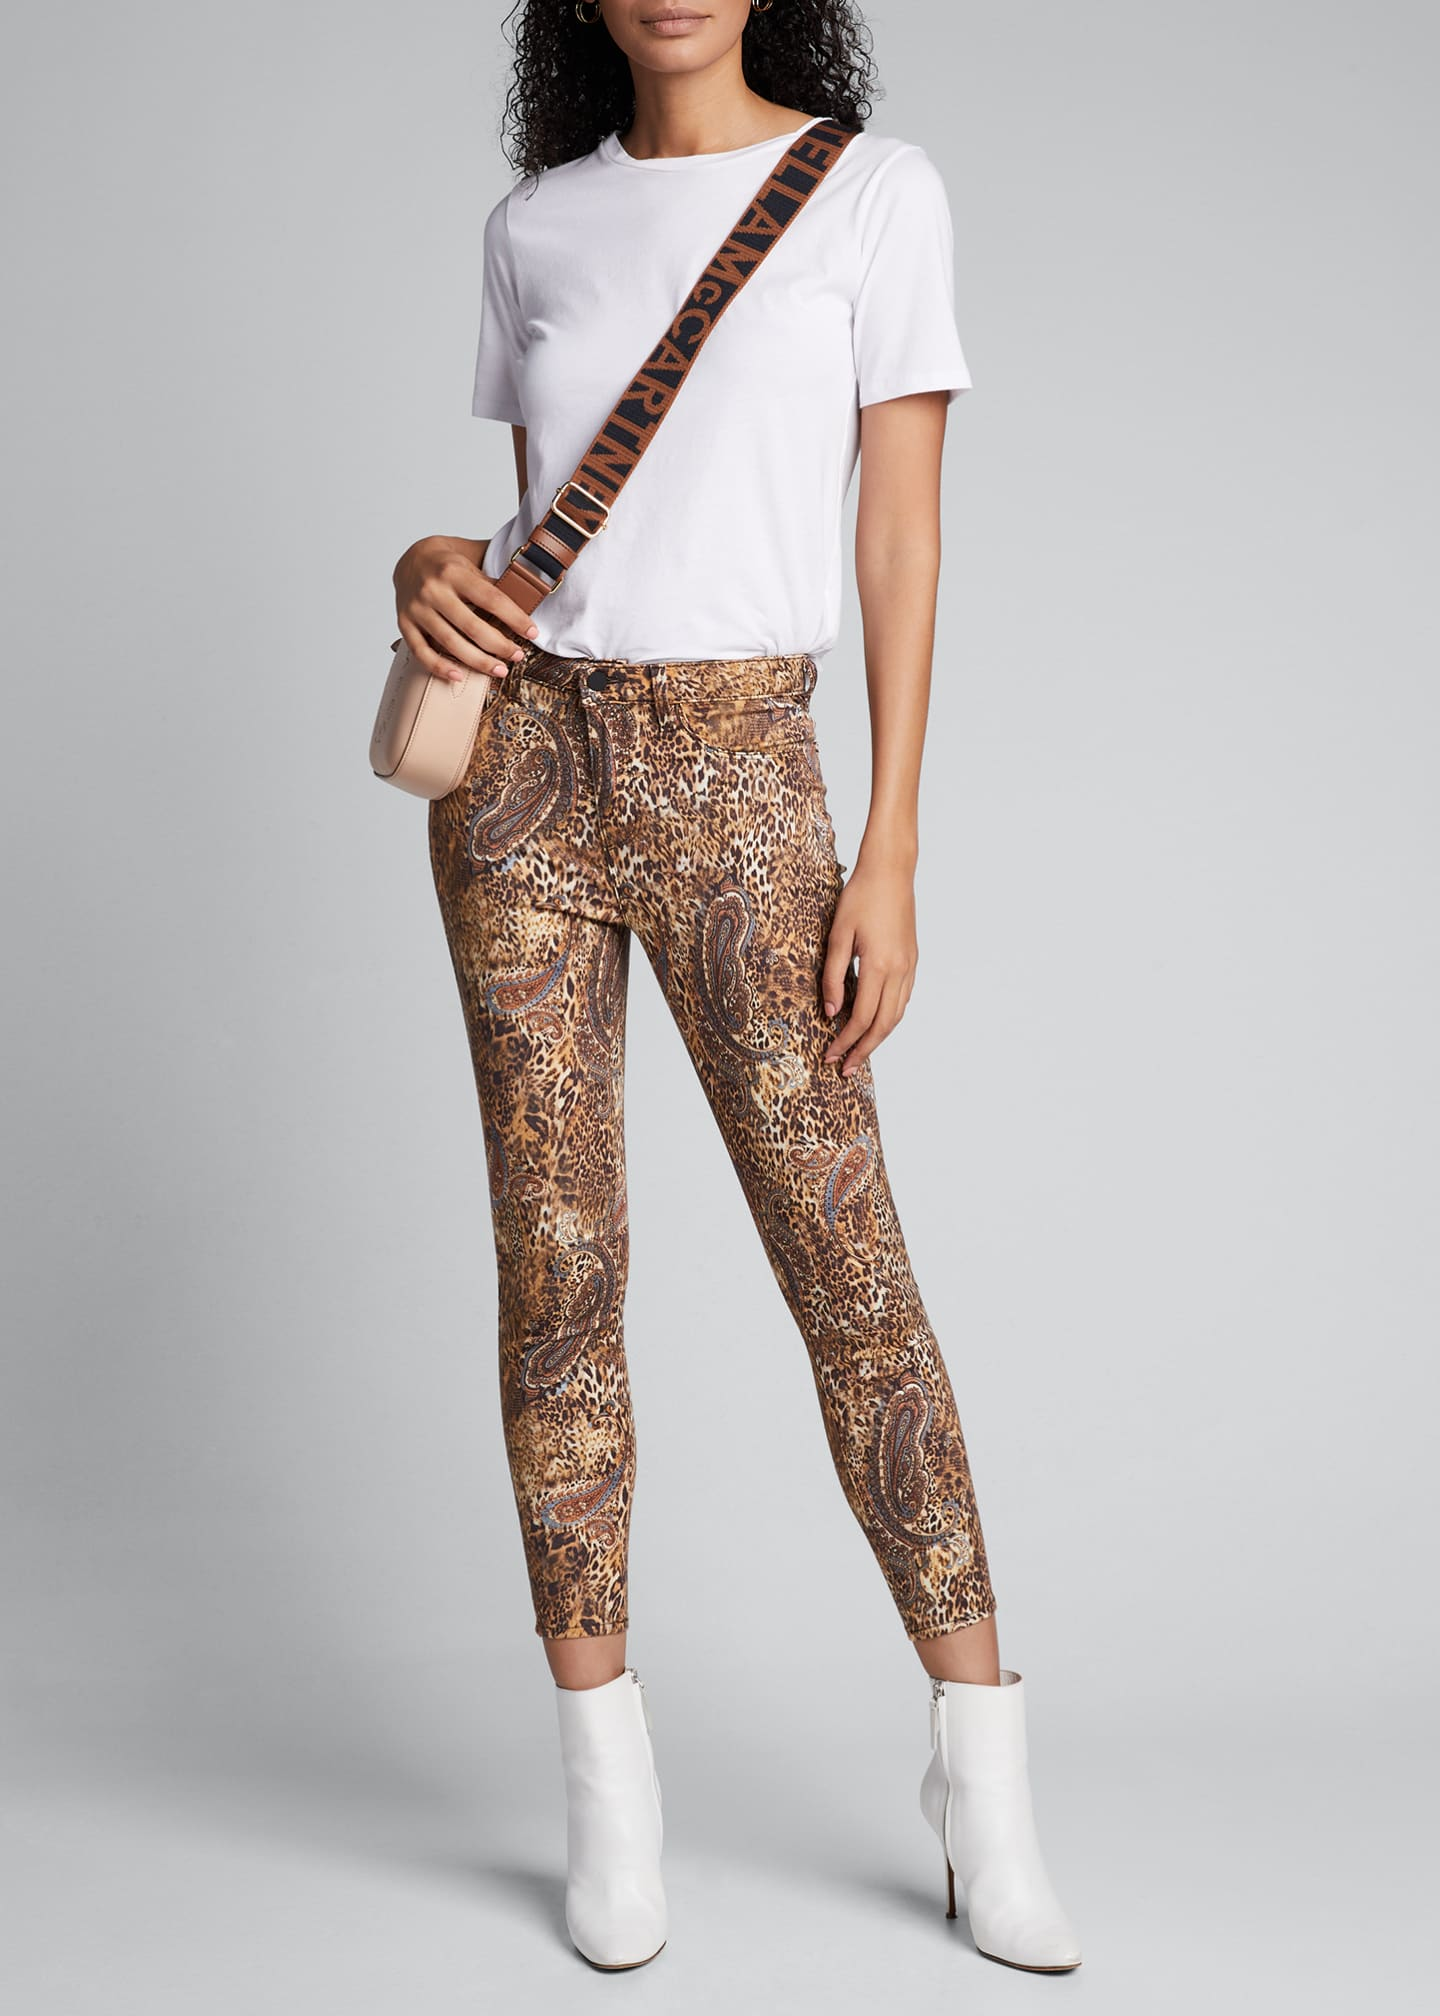 L'Agence Margot Valencia High-Rise Skinny Ankle Jeans